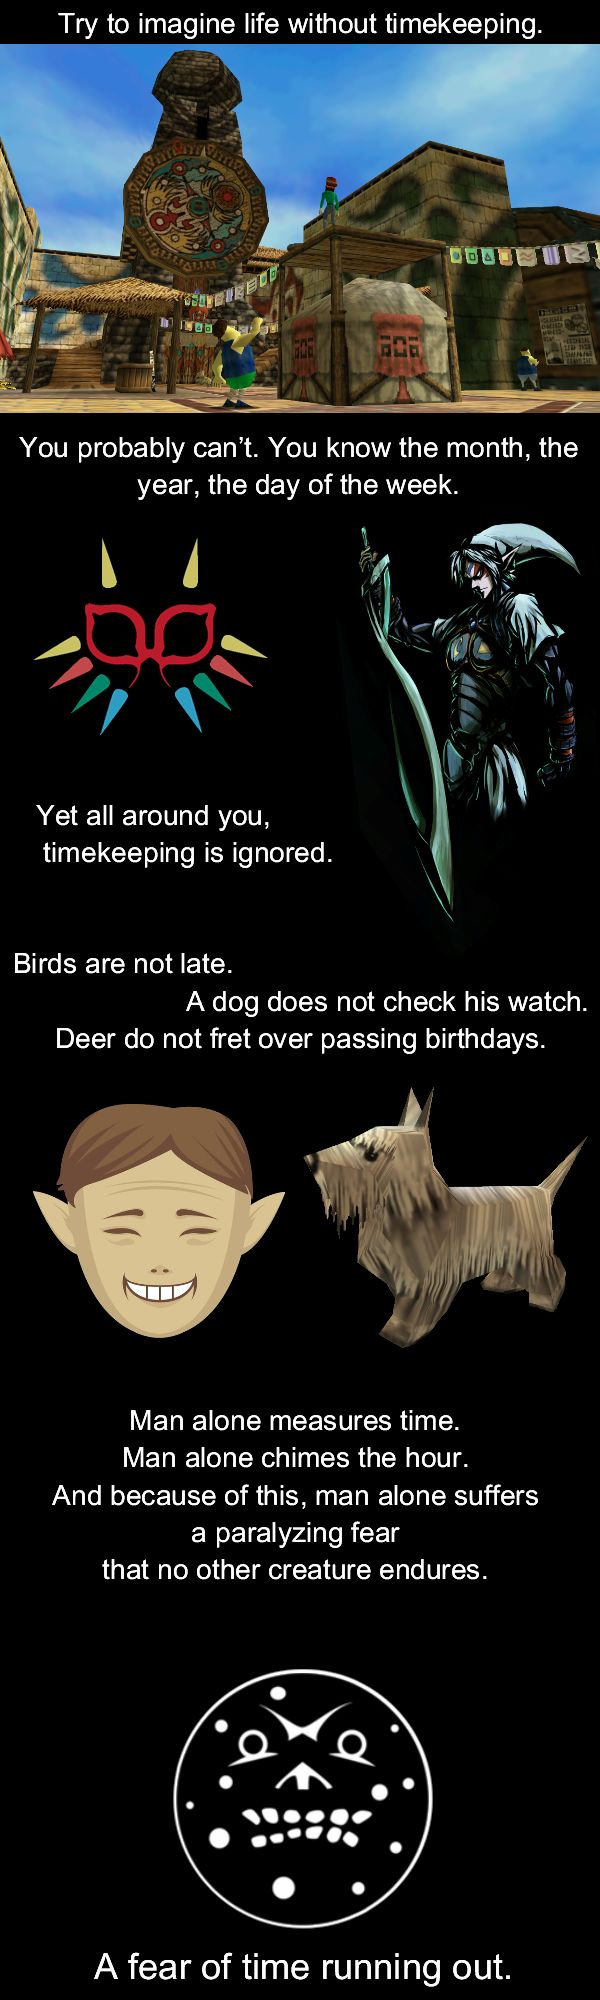 #LegendofZelda #MajorasMask Quote via reddit user  Onlyhereforthelaughs